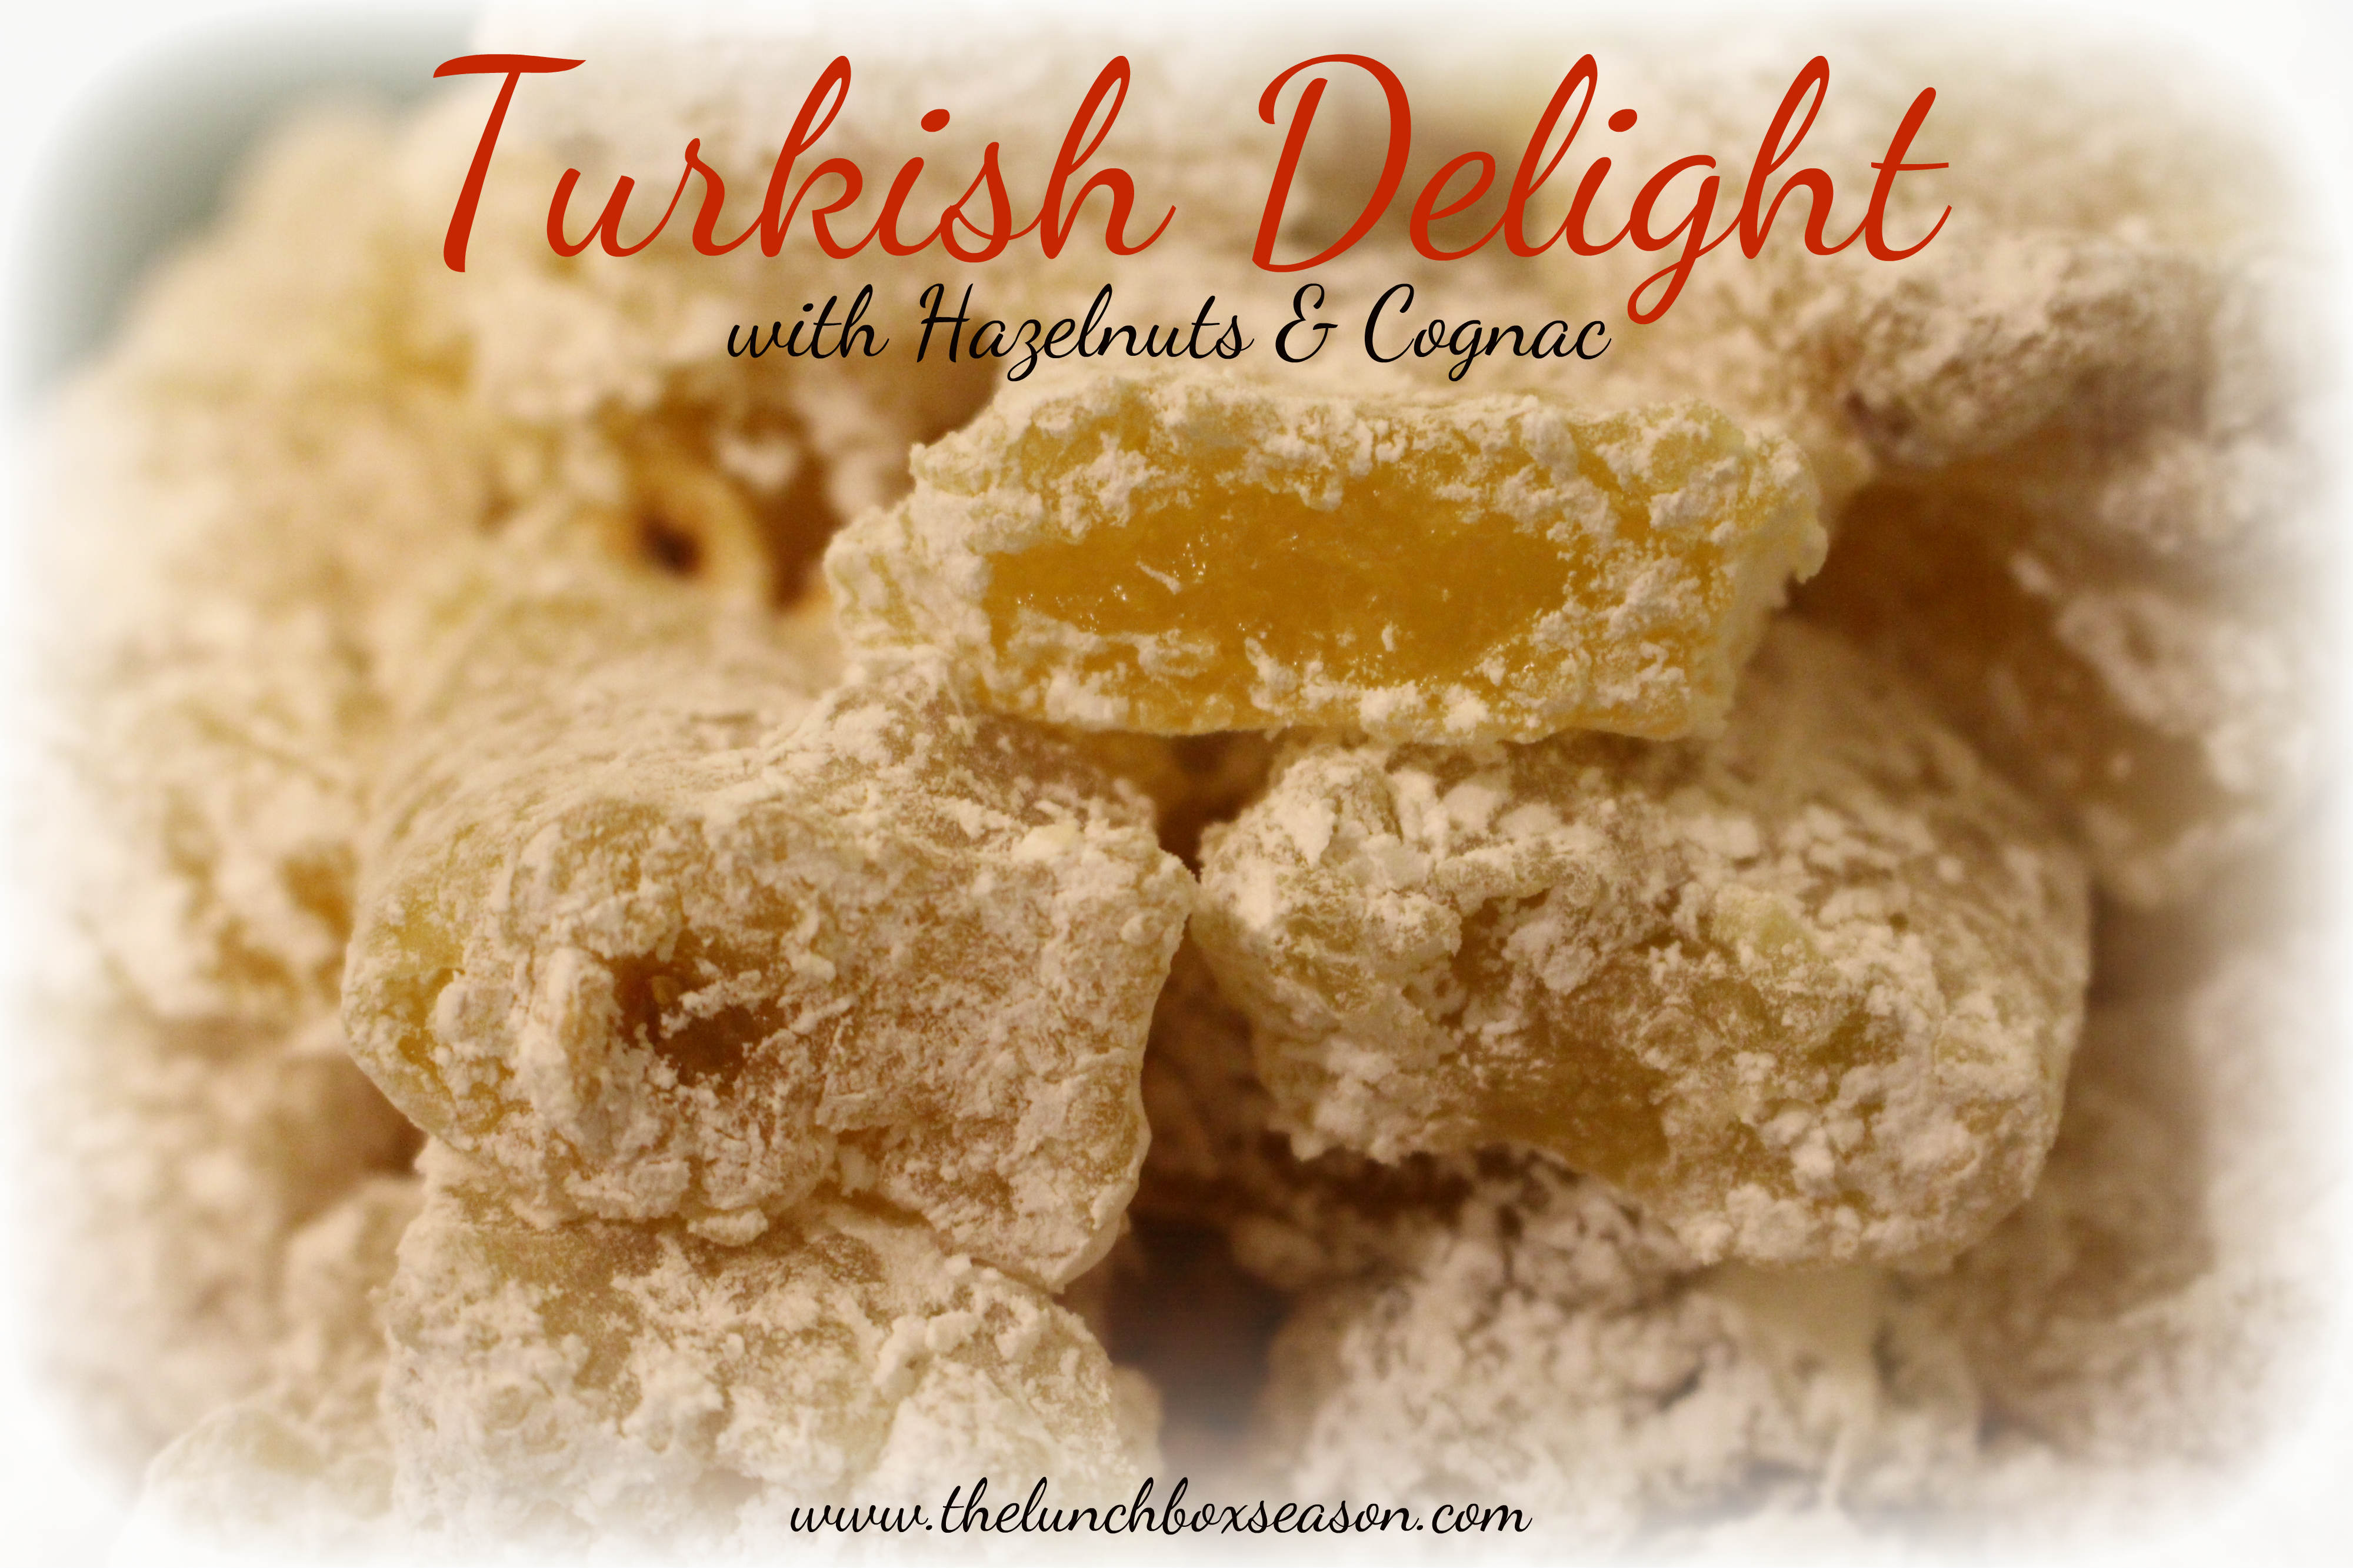 Turkish Delight Recipe from The Lunchbox Season